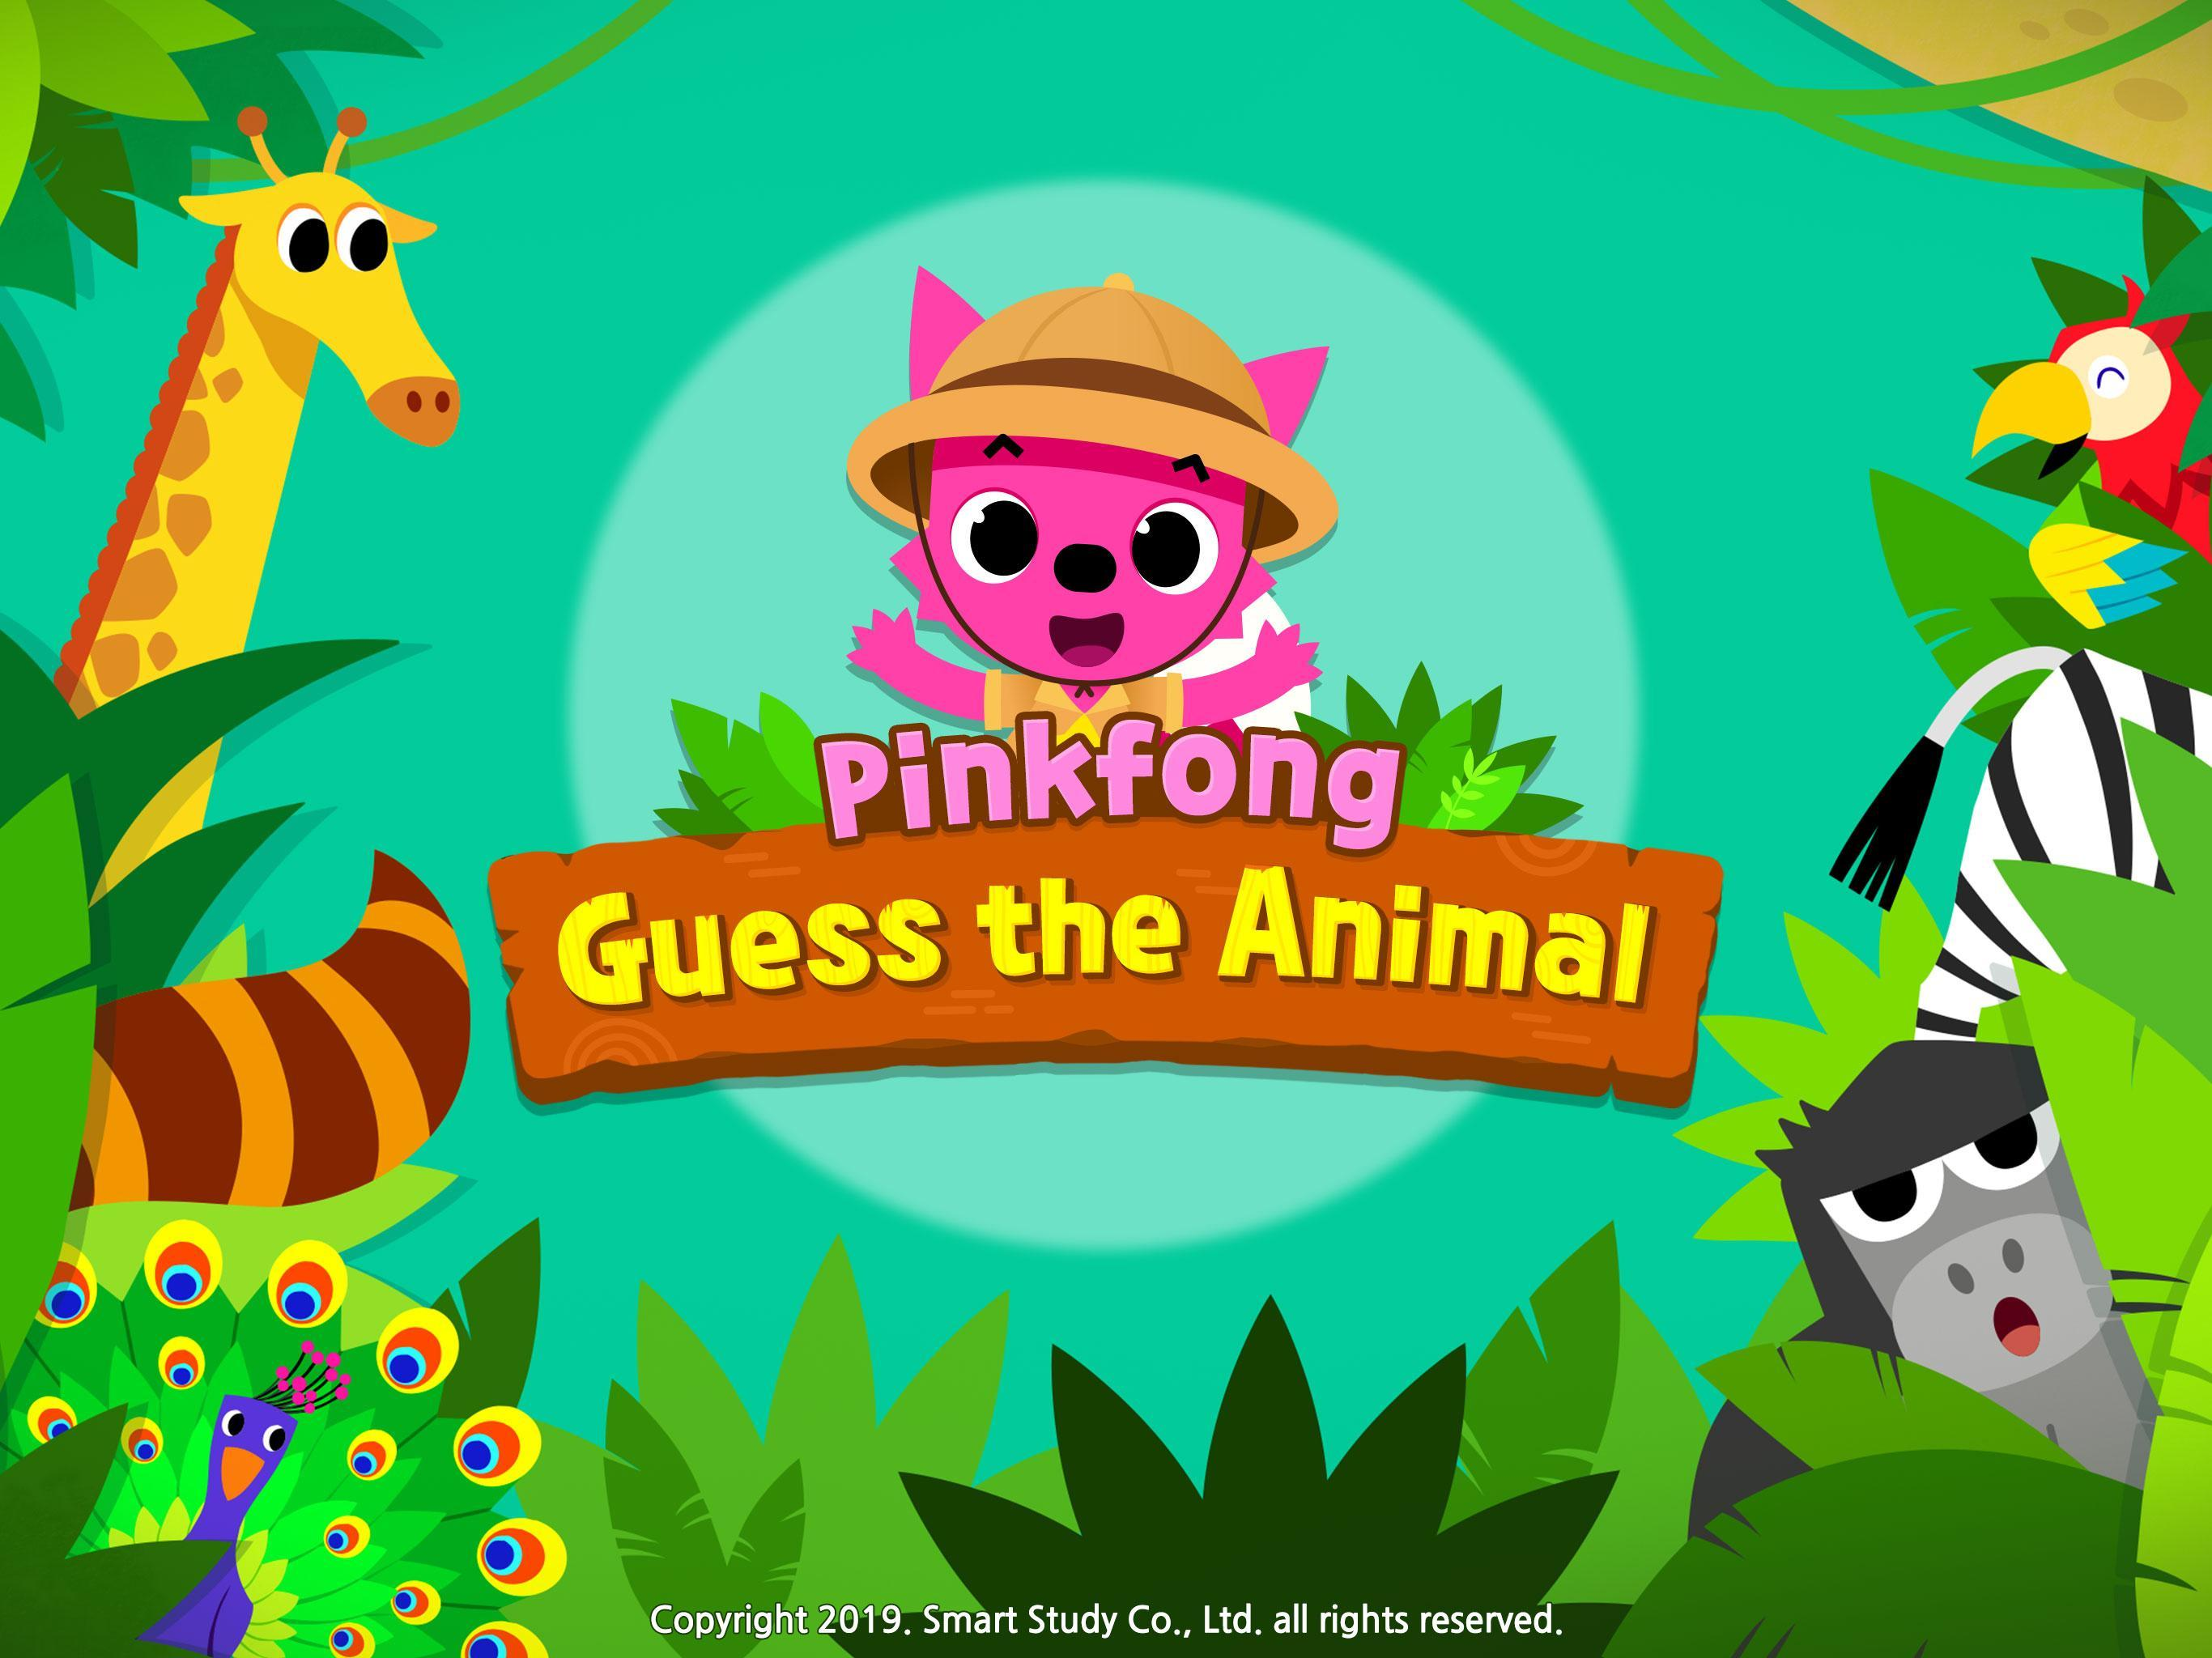 Pinkfong Guess the Animal poster